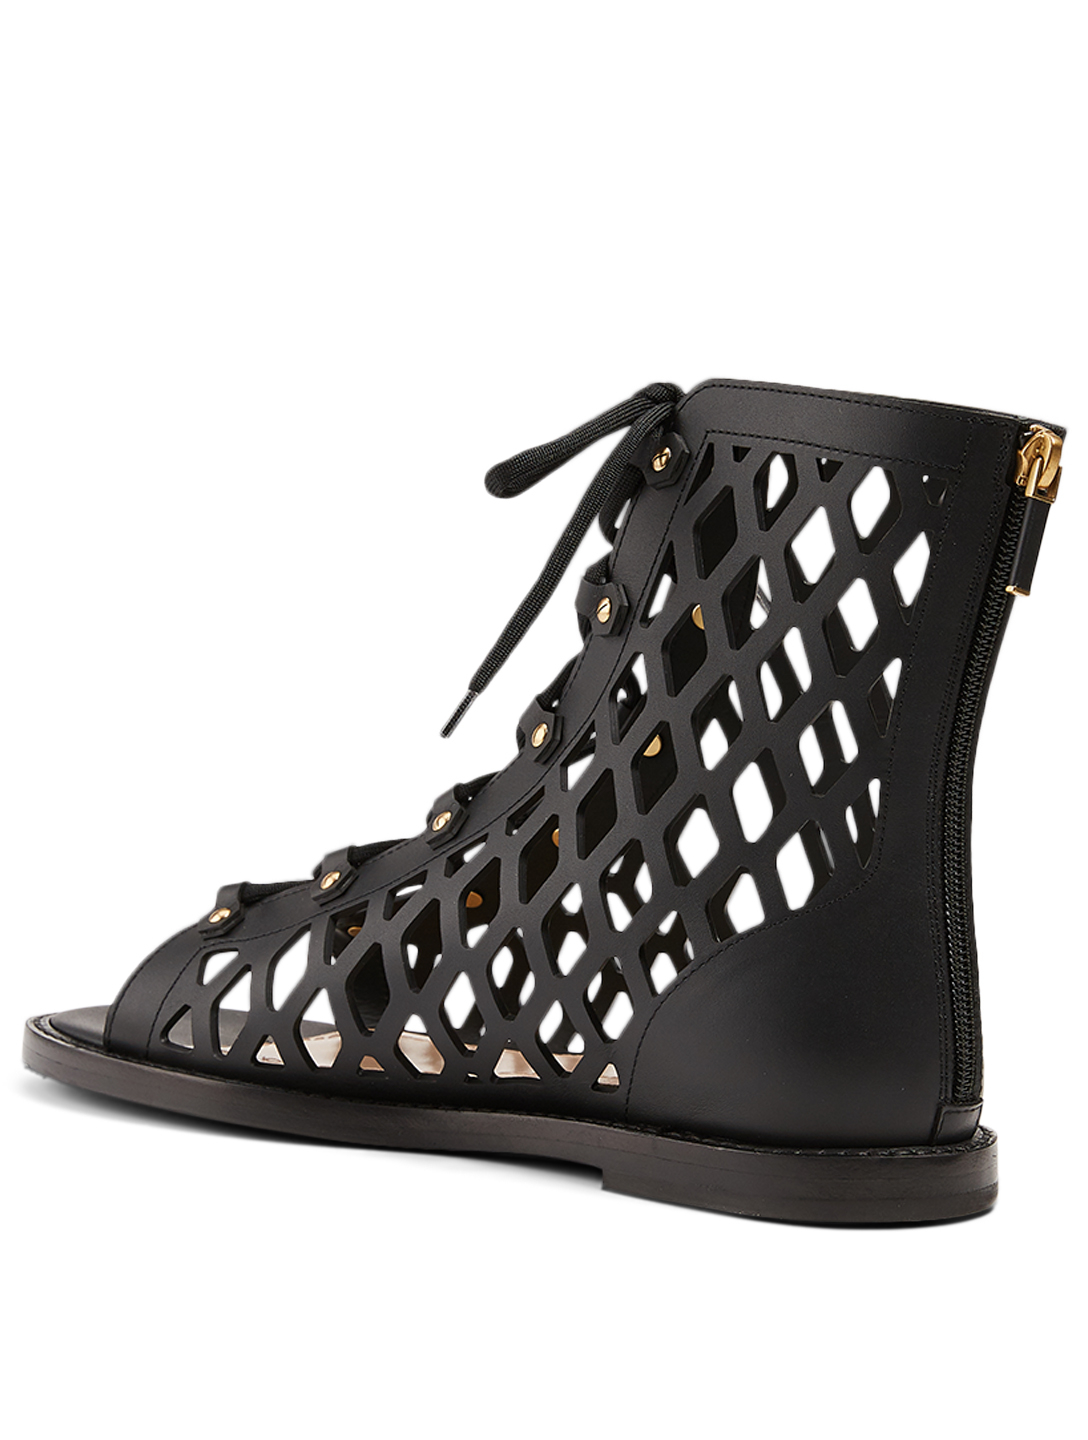 DIOR D-Trap Leather Lace-Up Sandals Women's Black